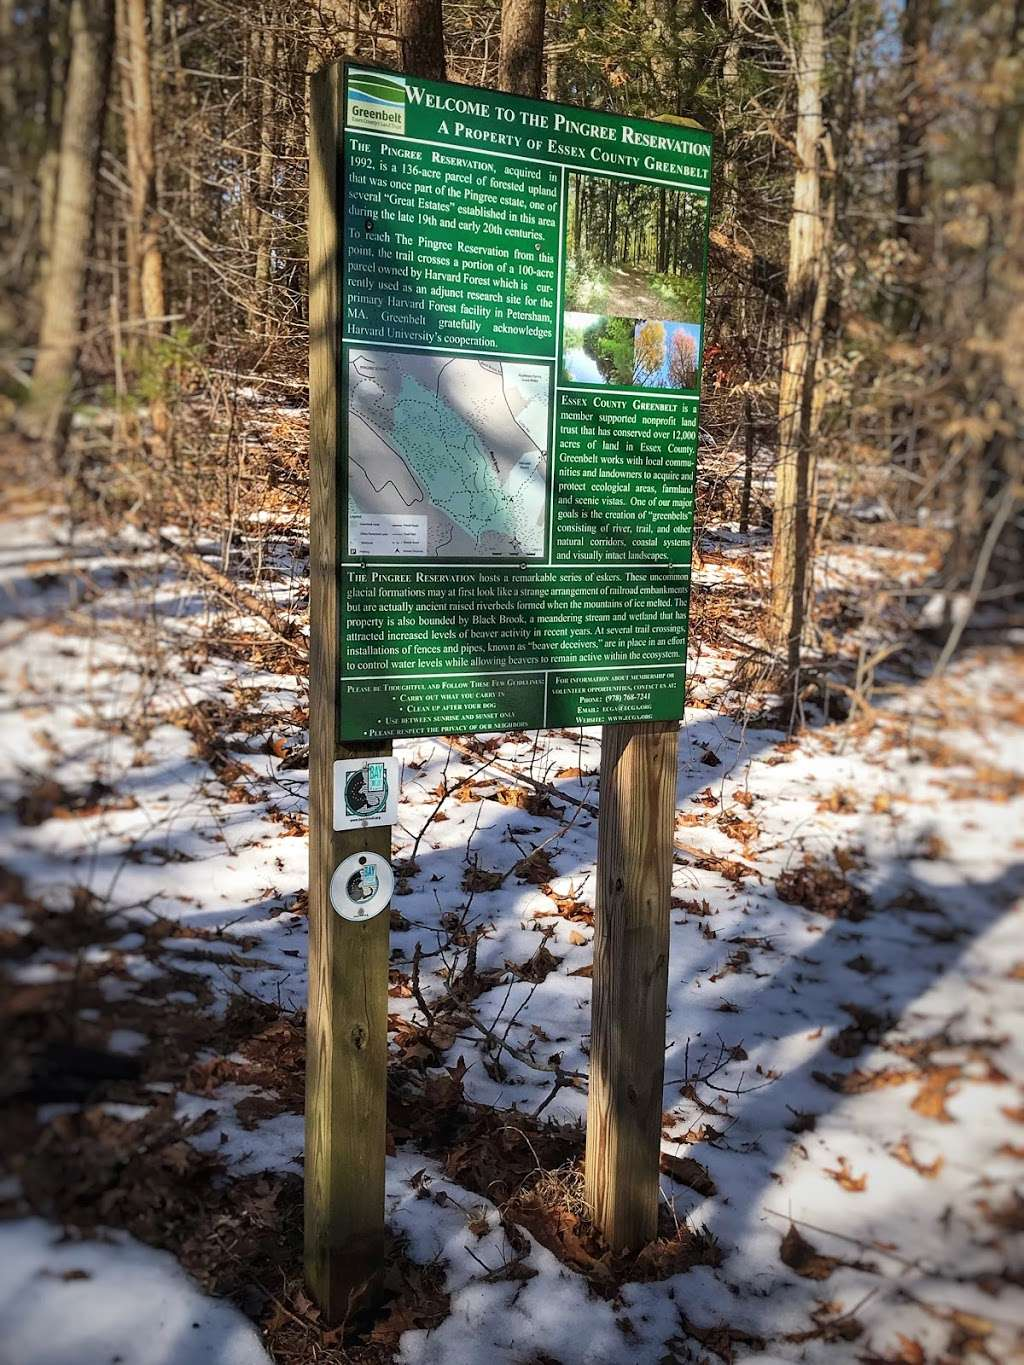 Pingree Woodlot Trail - campground  | Photo 2 of 2 | Address: Cutler Rd, Essex, MA 01929, USA | Phone: (978) 768-7241